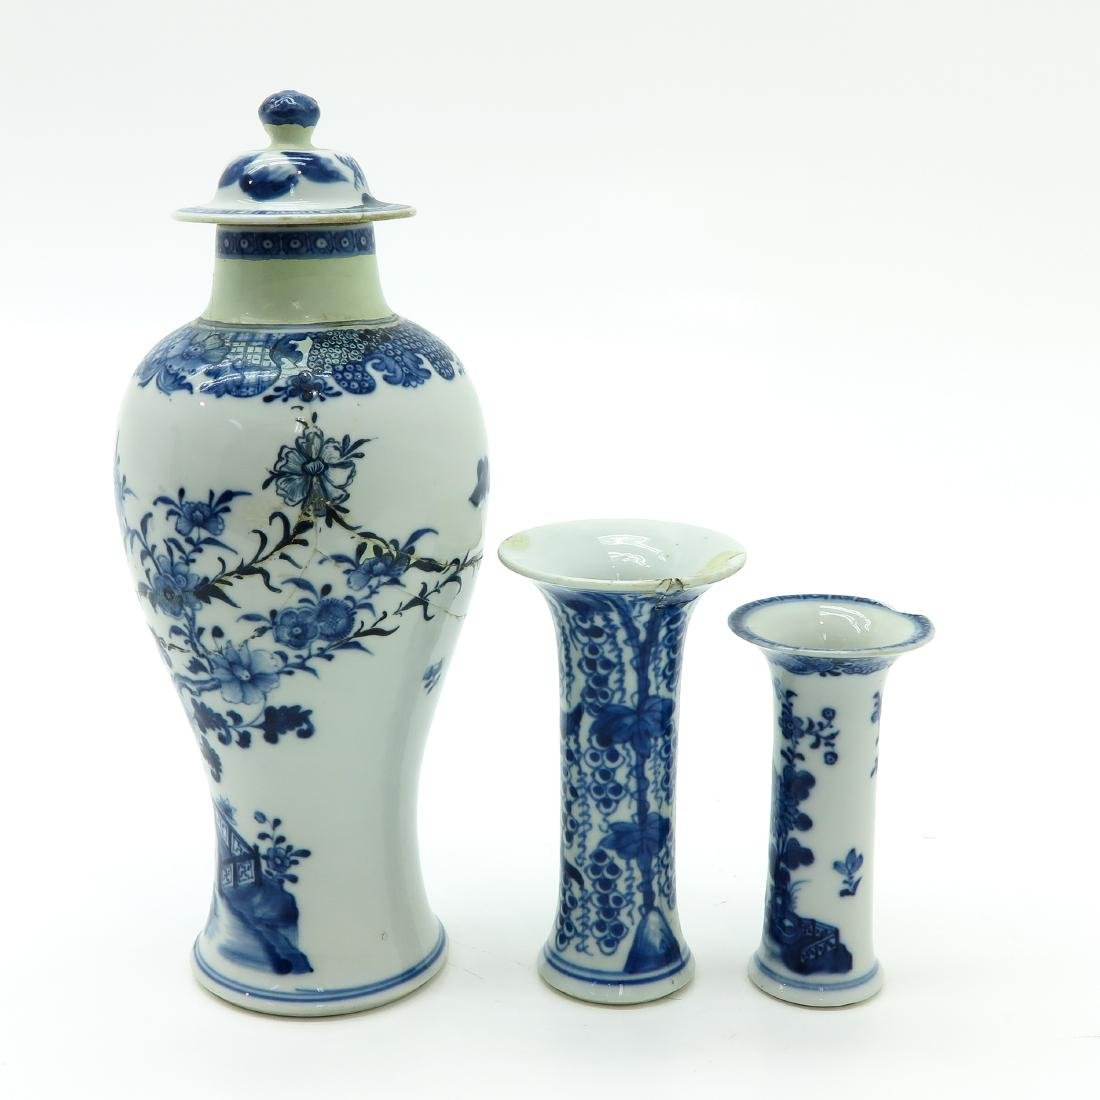 Lot of 3 Blue and White Vases - 3